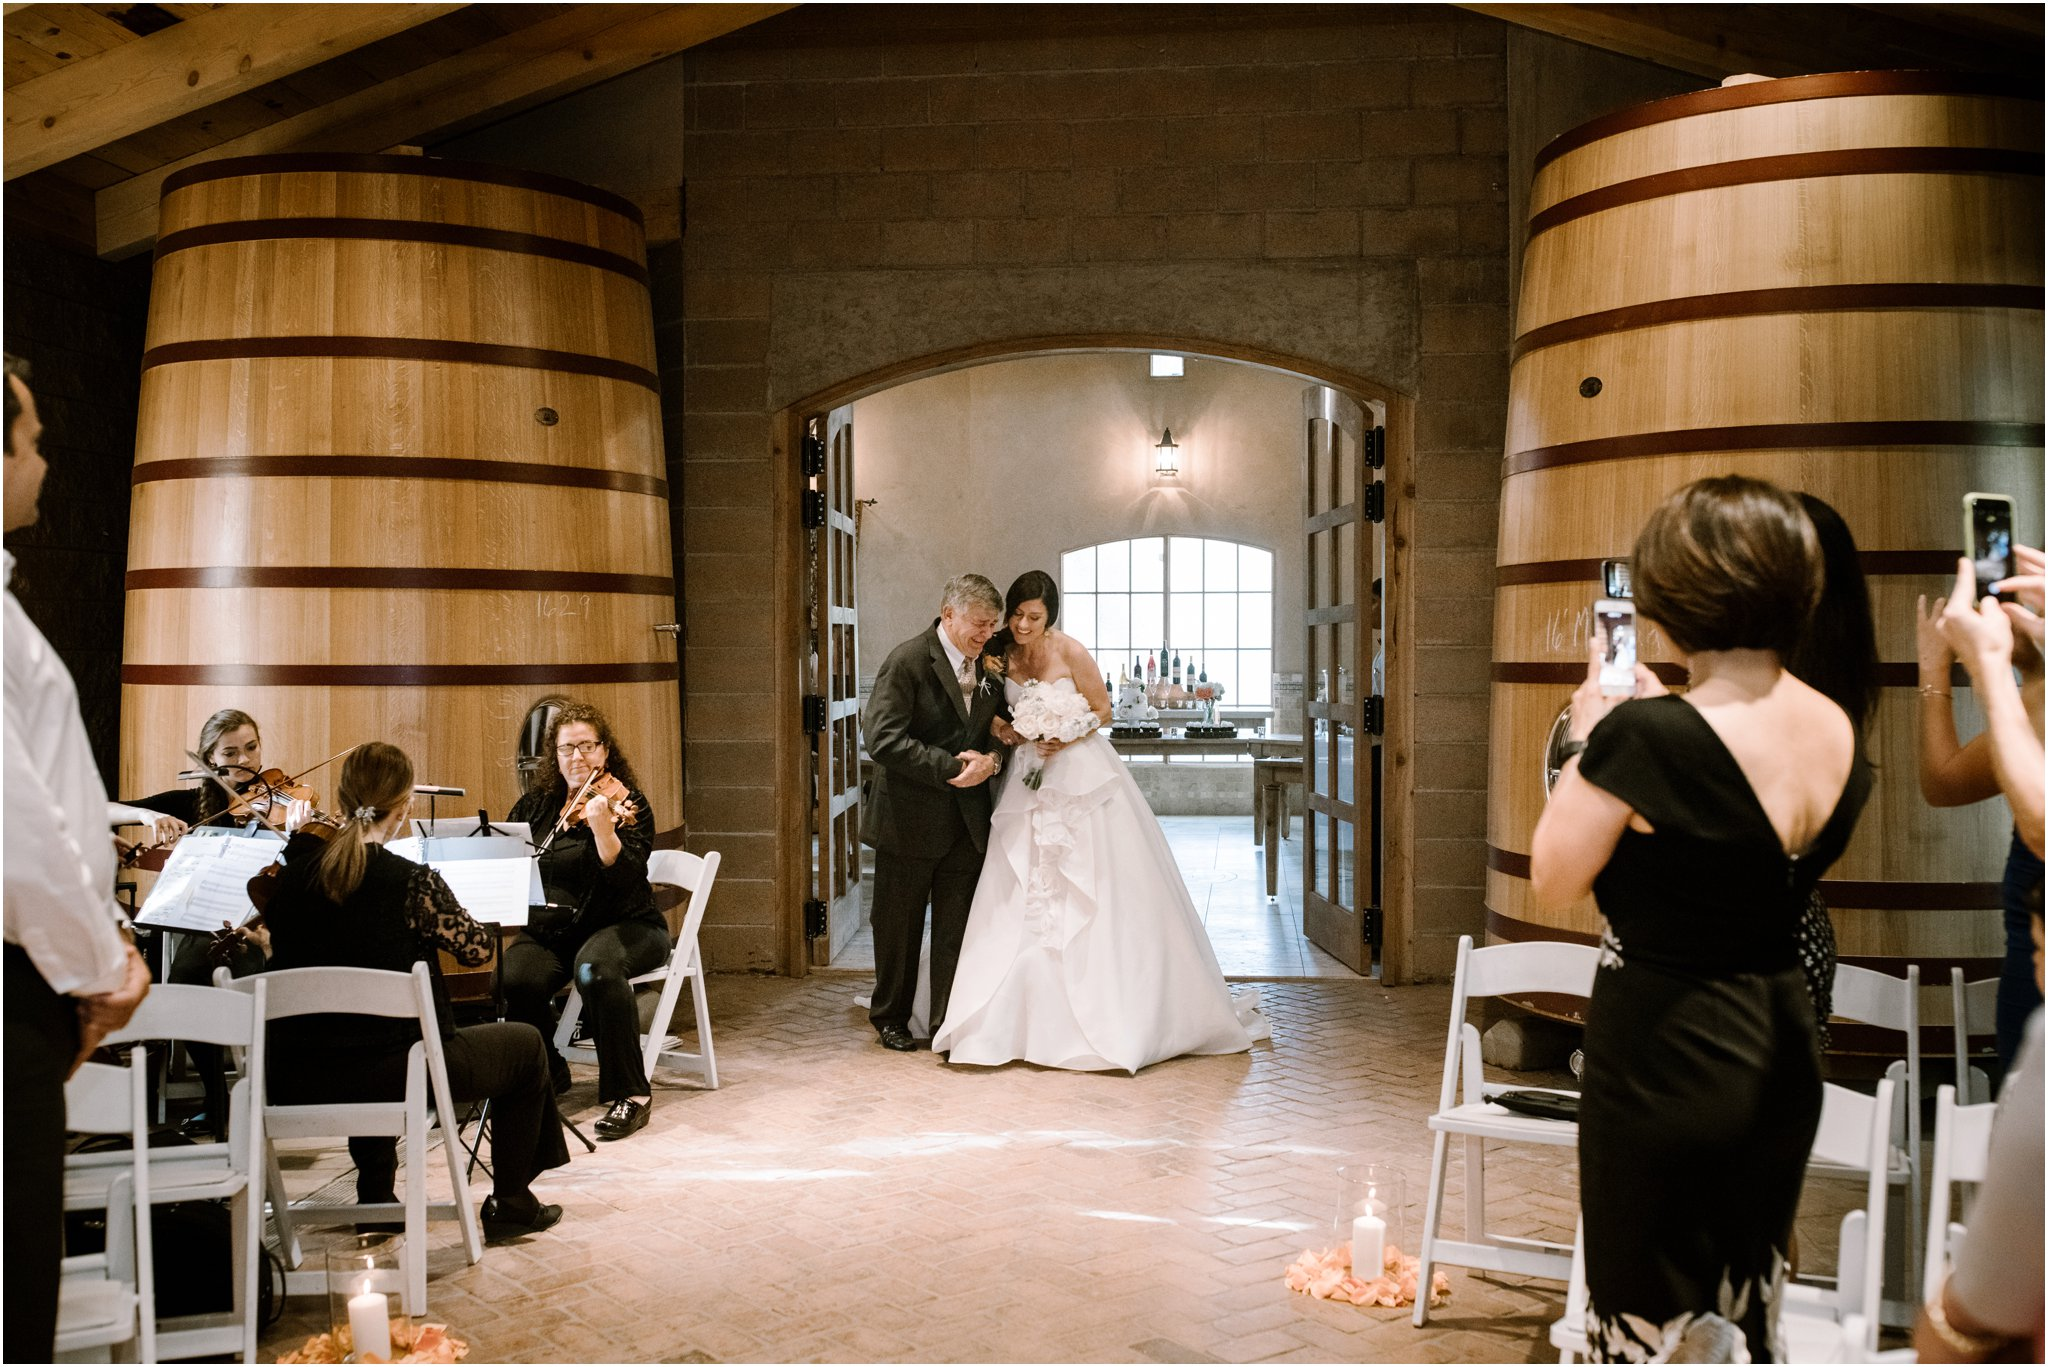 0202Casa Rodena Winery Wedding, Inn and Spa at Loretto wedding, Santa Fe wedding photographers, blue rose photography